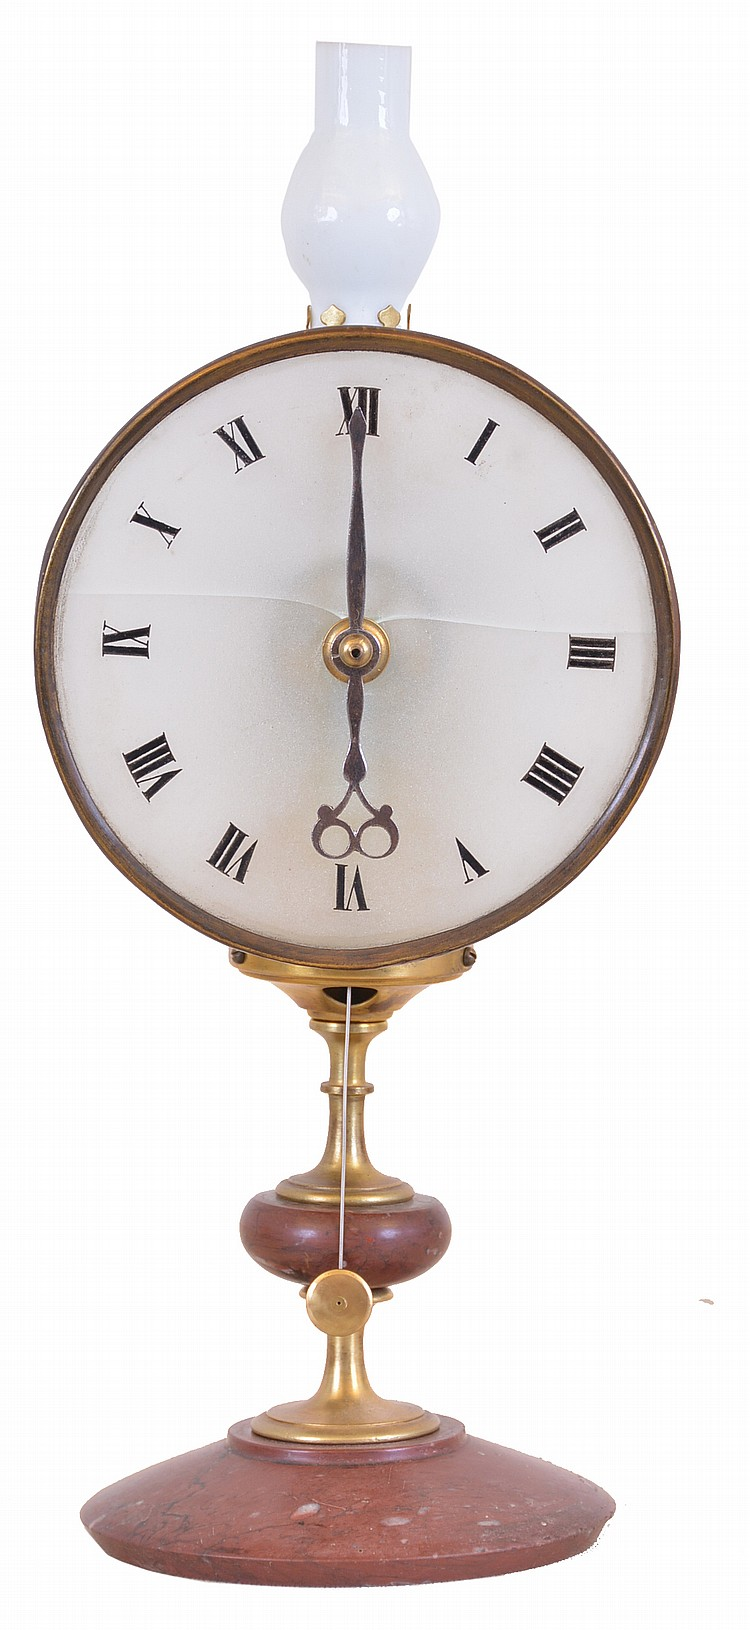 France or Germany, night clock, the timepiece with red marble base and turned brass stand, Roman numeral frosted glass dial, 30 hour movement with one hand, and a small lamp, which illuminates the dial